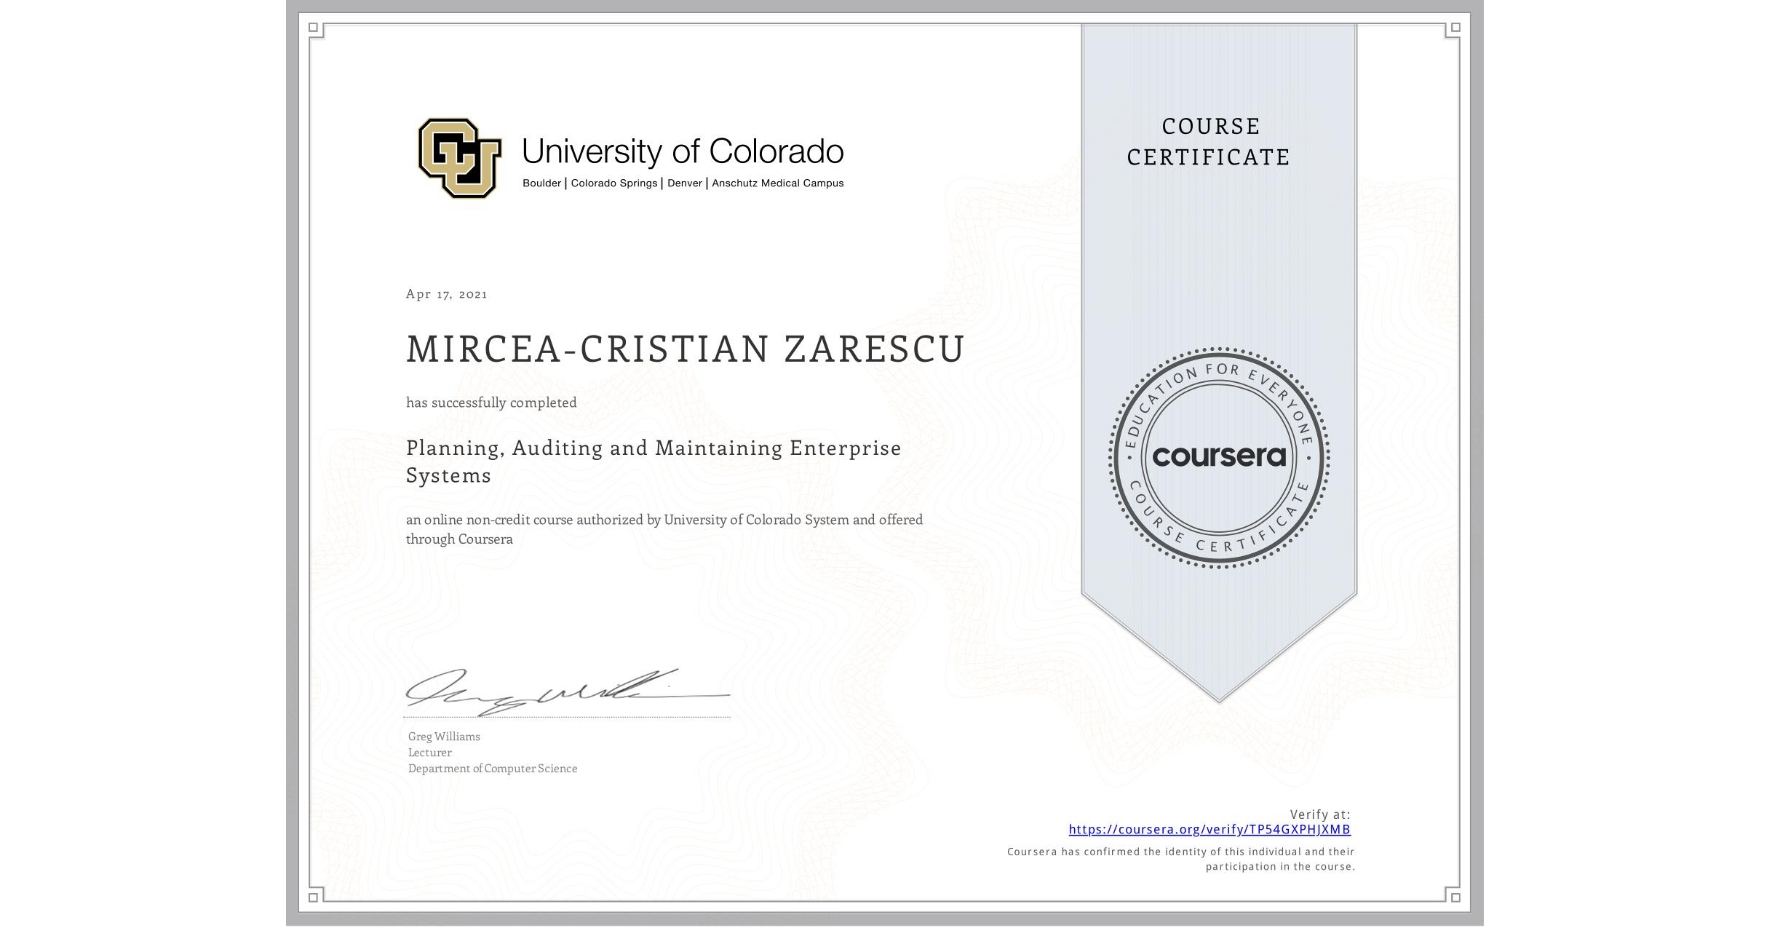 View certificate for MIRCEA-CRISTIAN ZARESCU, Planning, Auditing and Maintaining Enterprise Systems, an online non-credit course authorized by University of Colorado System and offered through Coursera